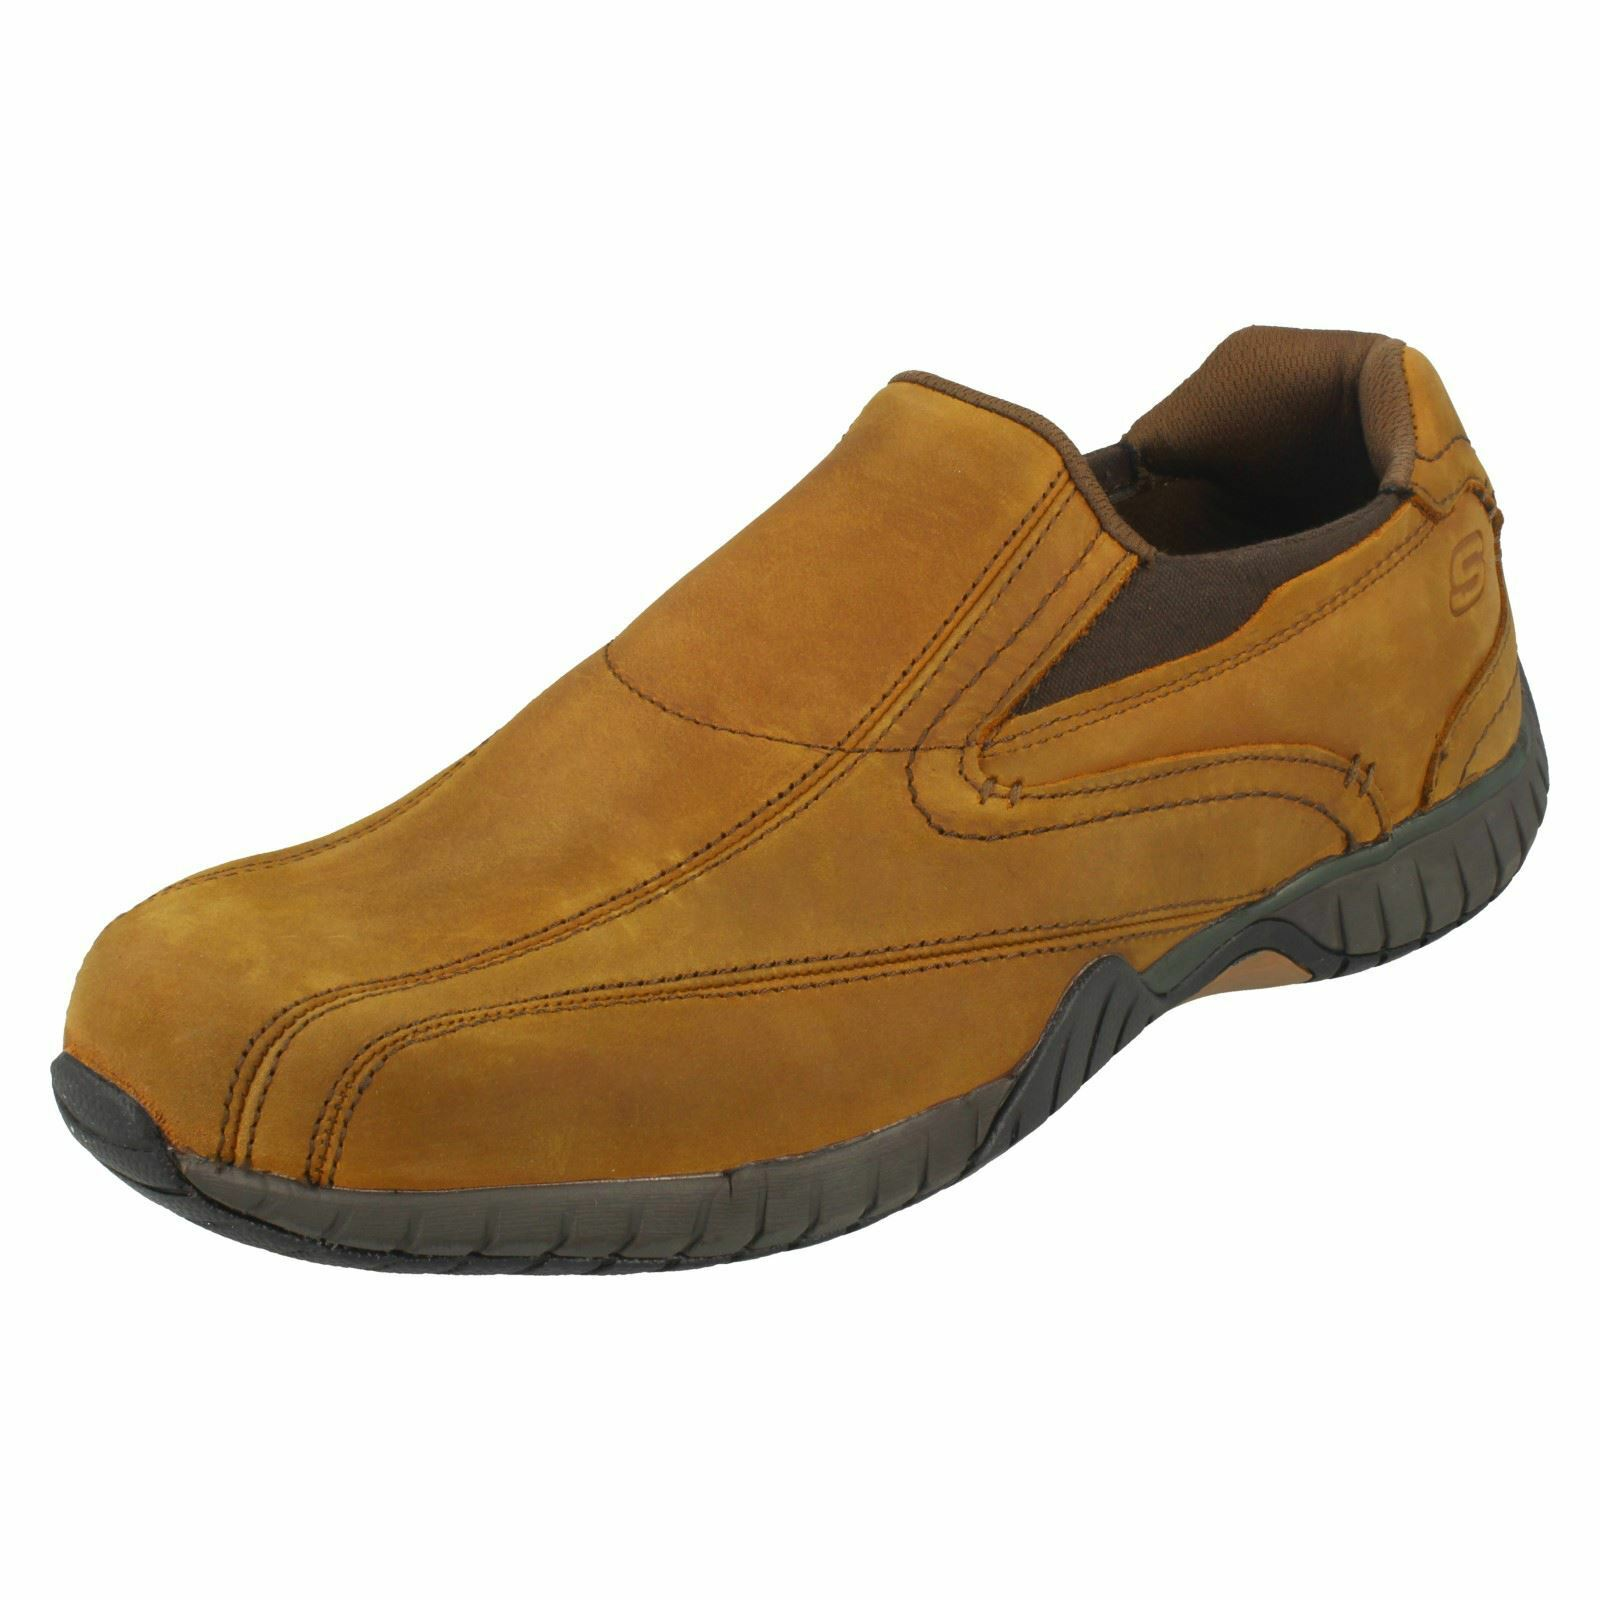 Mens Skechers Rounded Toe Casual Slip On Leather Shoes Sendro Bascom 65287